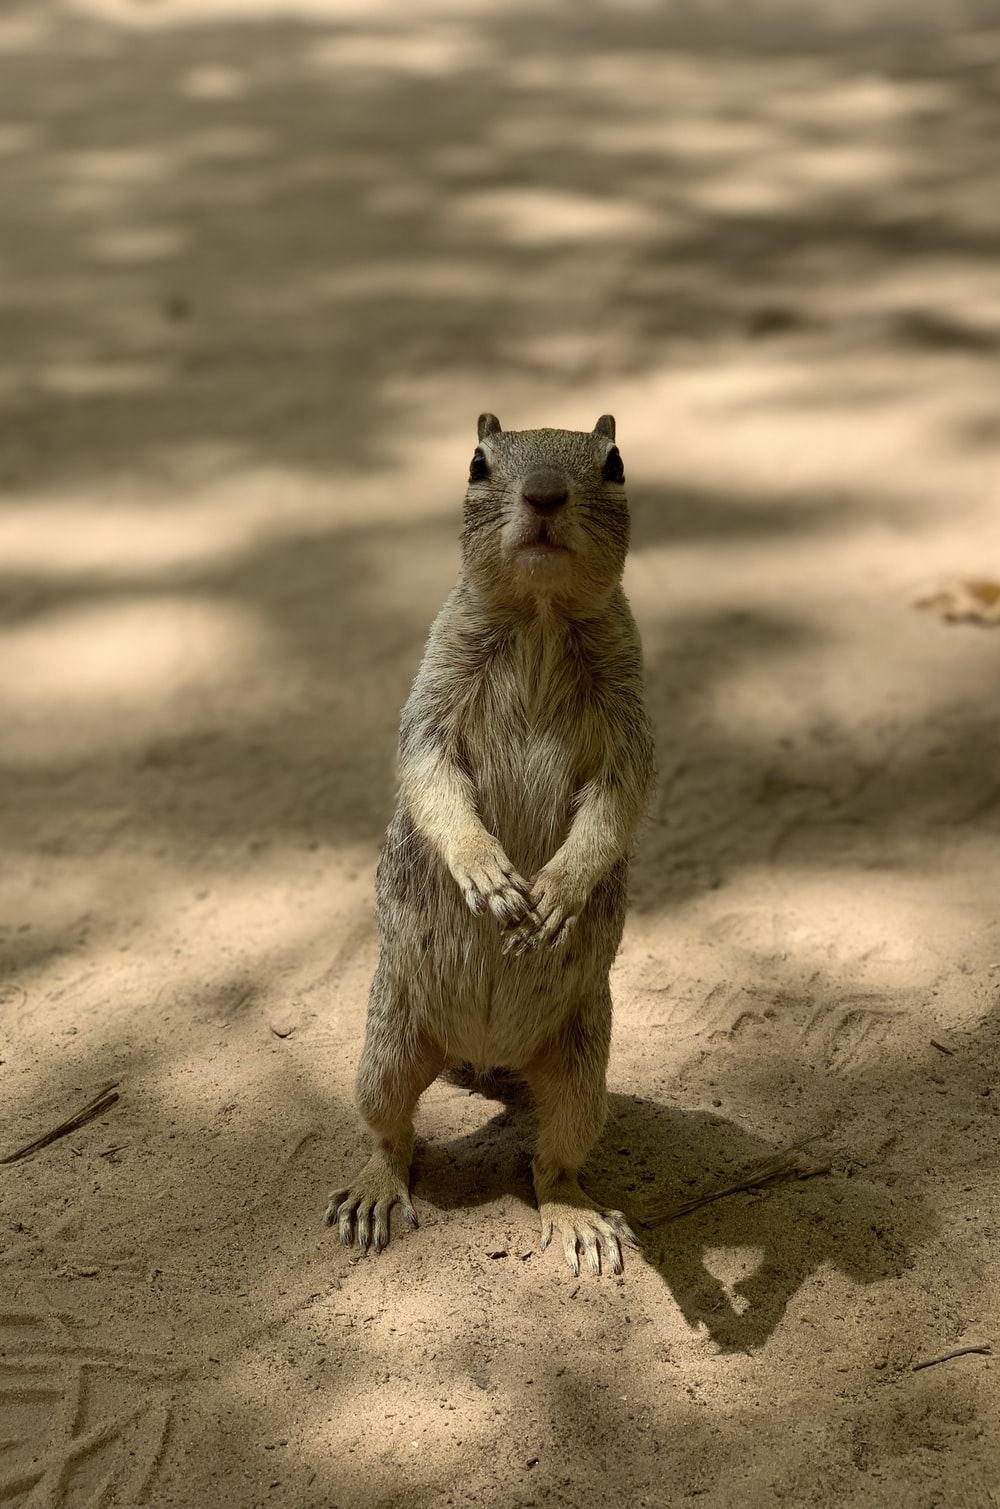 closeup photo of standing rodent